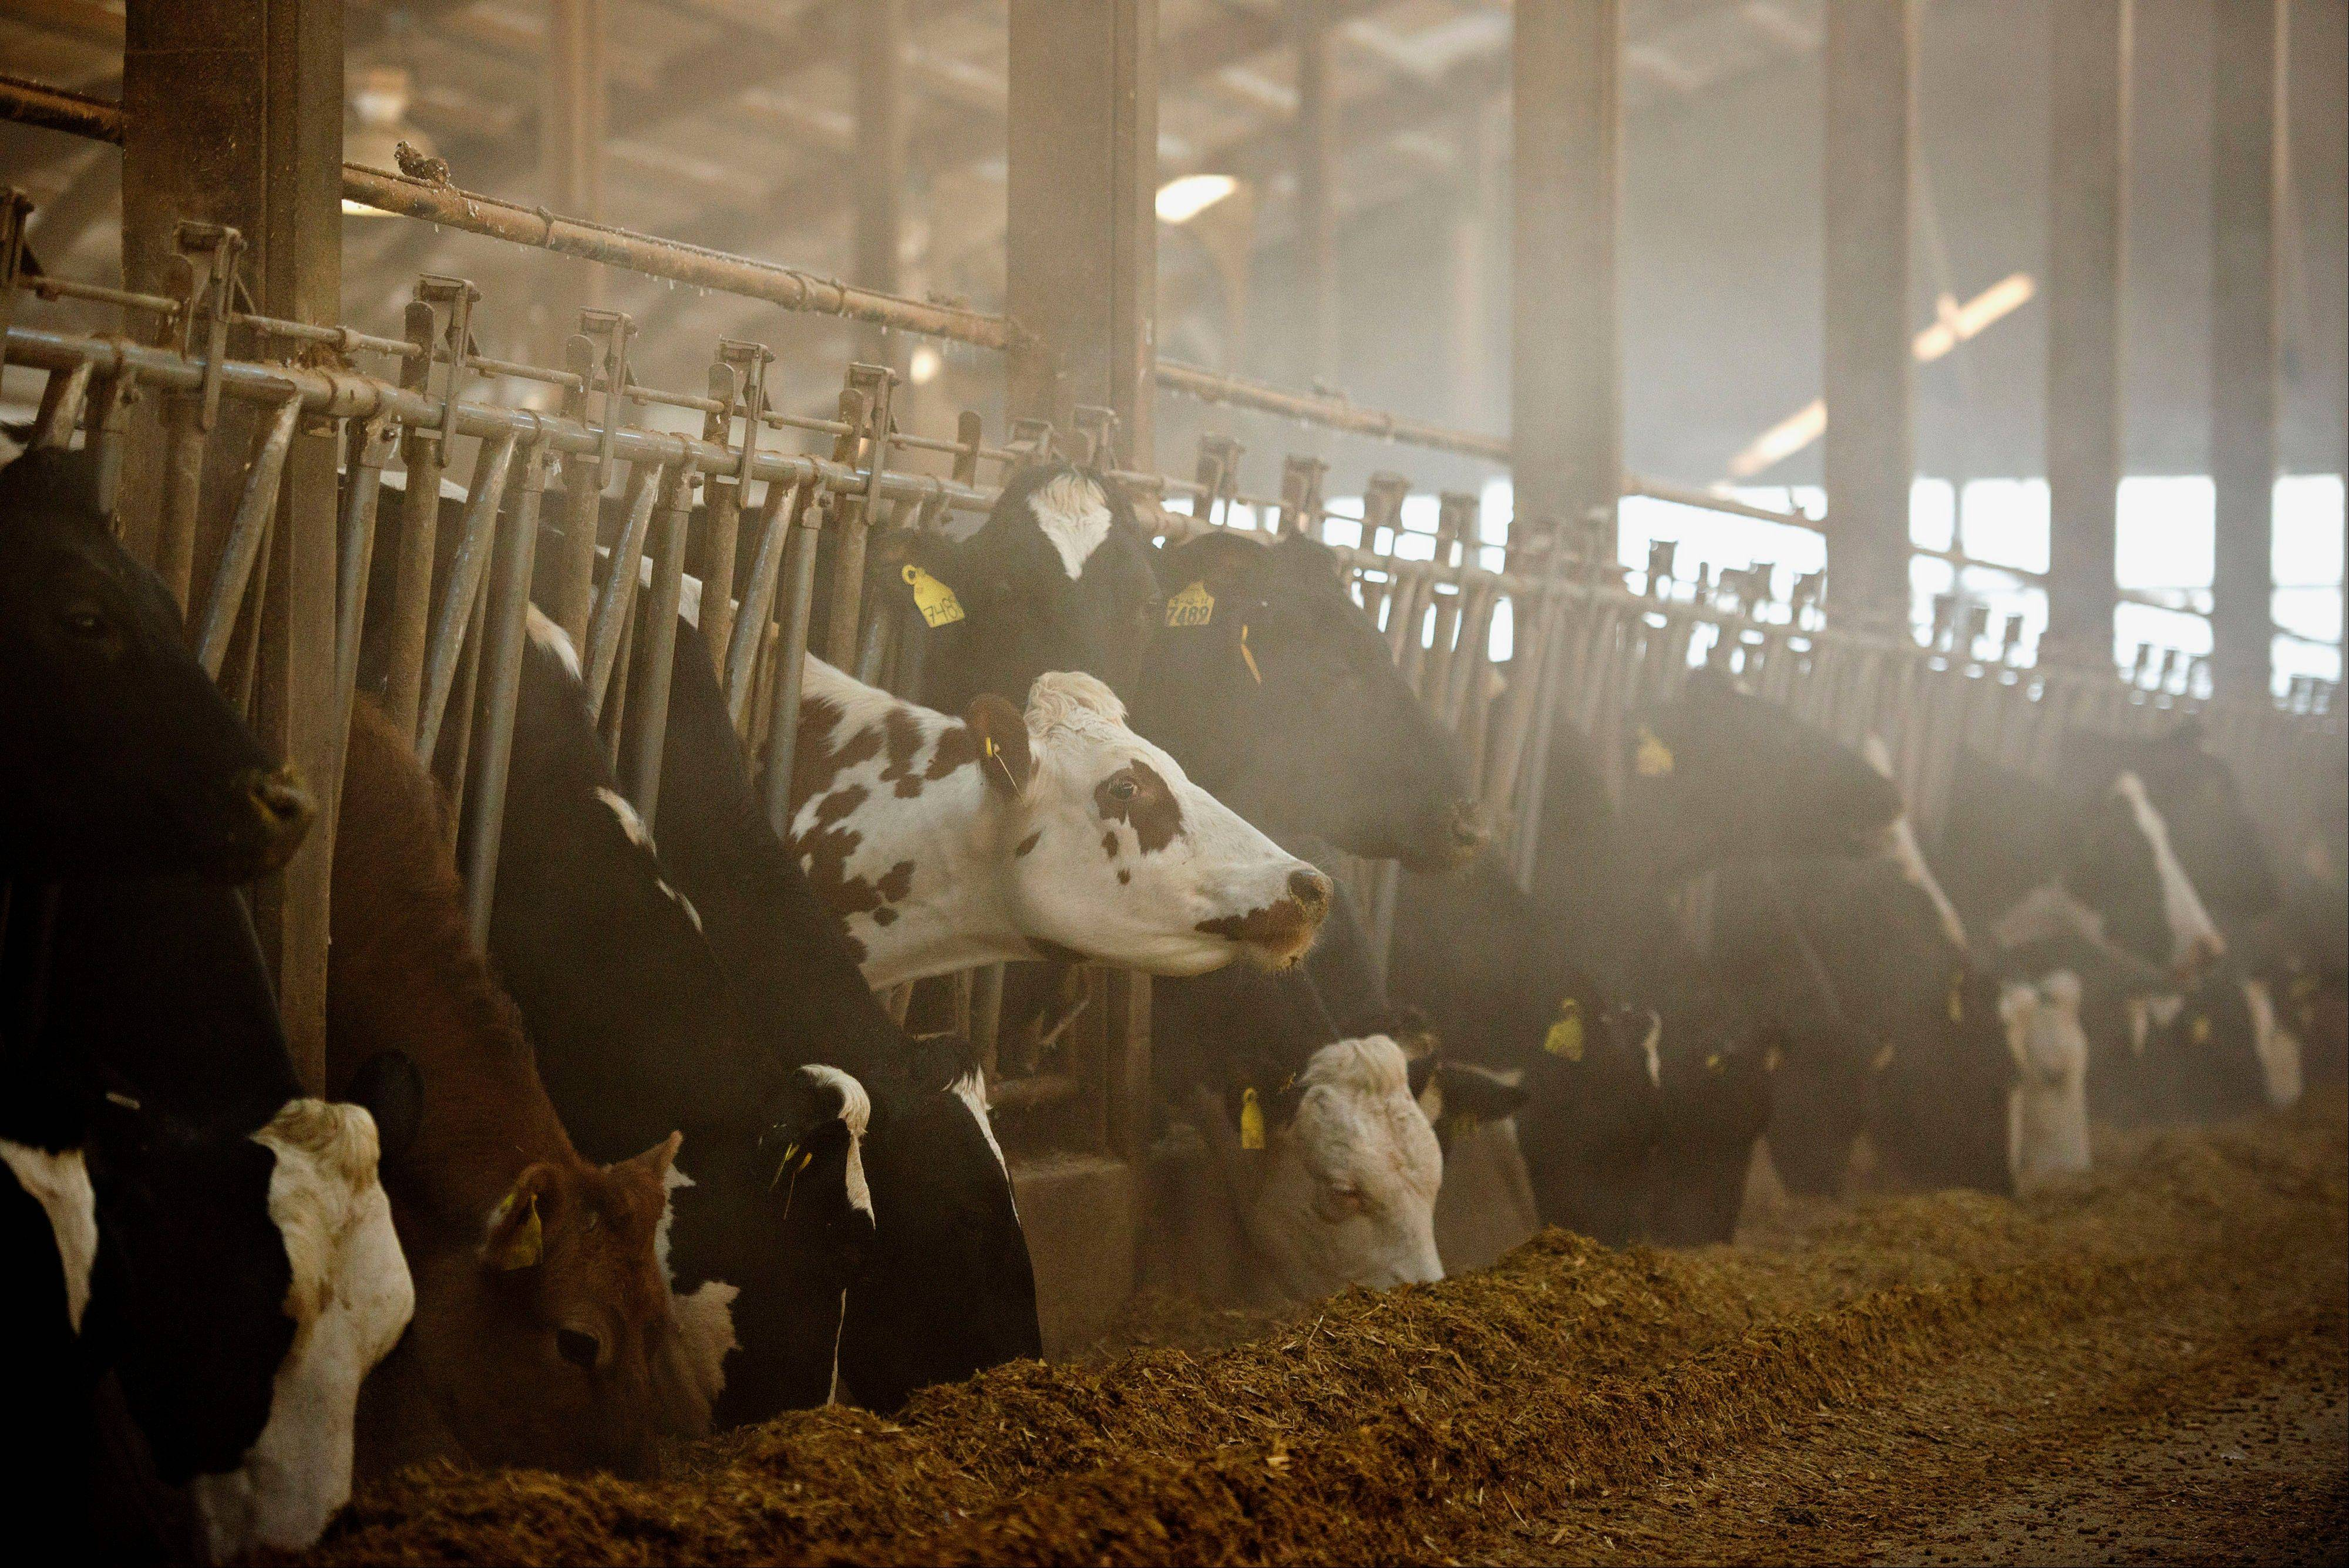 Cattle feed in a barn at Hunter Haven Dairy Farm in Pearl City, Illinois, U.S., on Tuesday, Jan. 28, 2014.